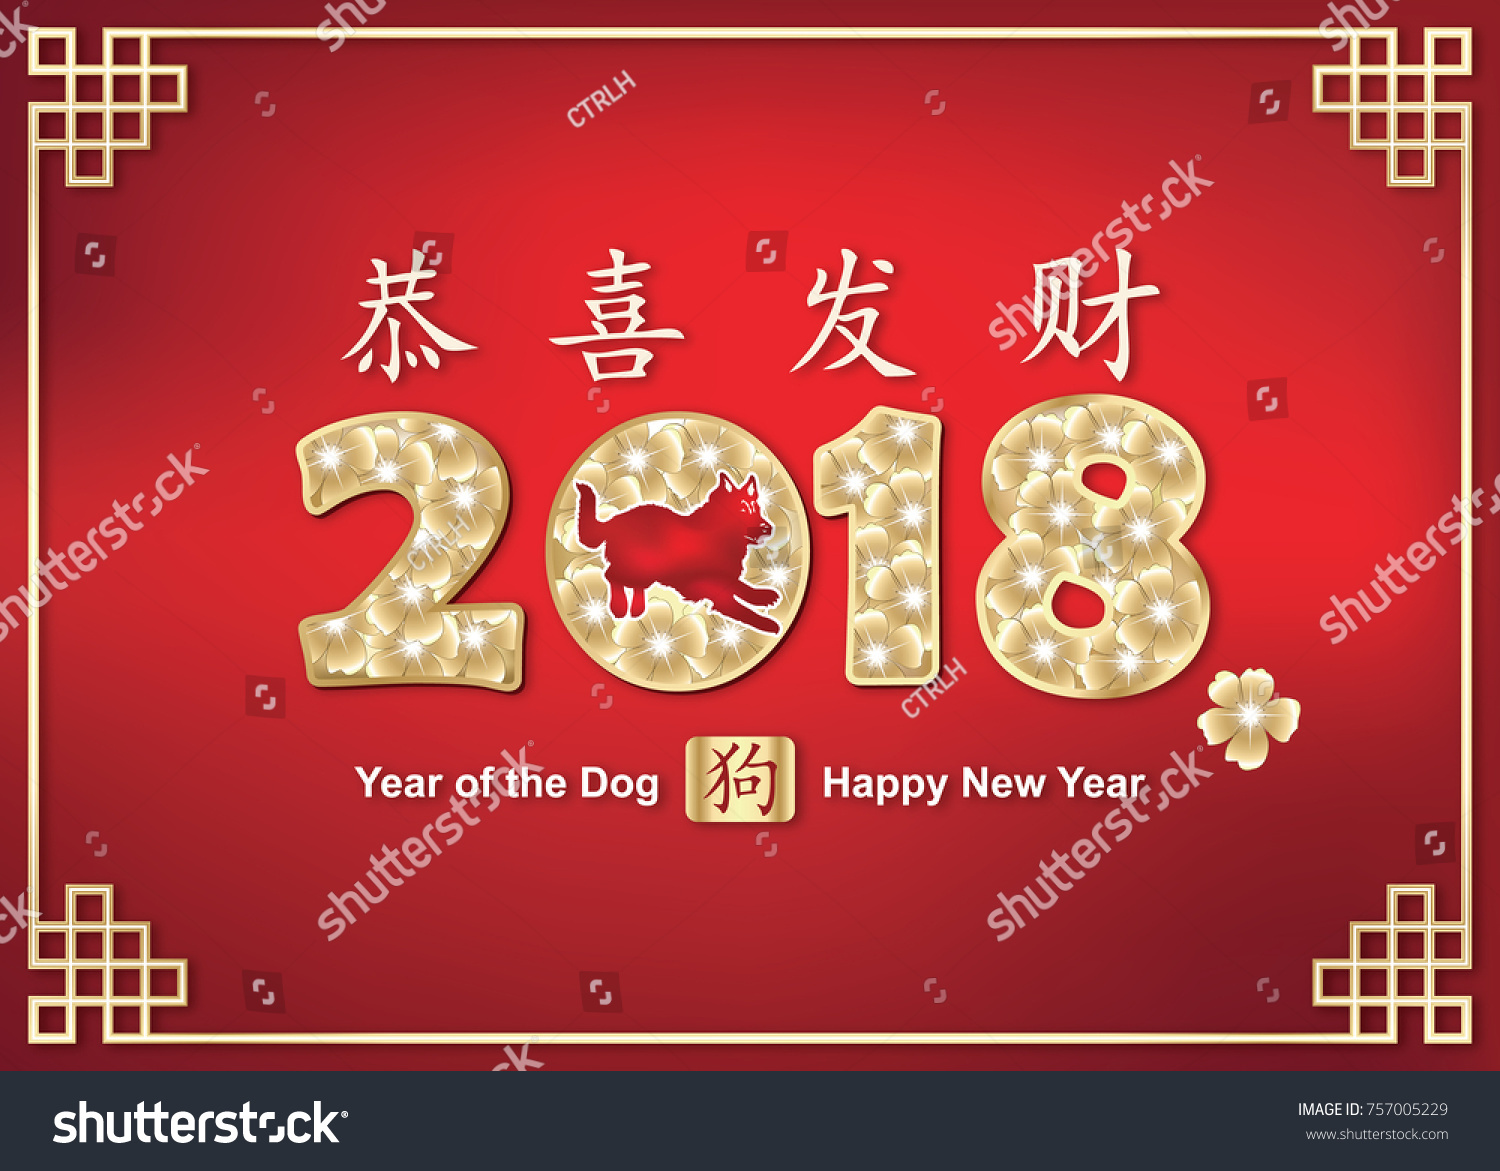 2018 happy chinese new year red stock illustration 757005229 2018 happy chinese new year red greeting card with message in chinese and english kristyandbryce Gallery